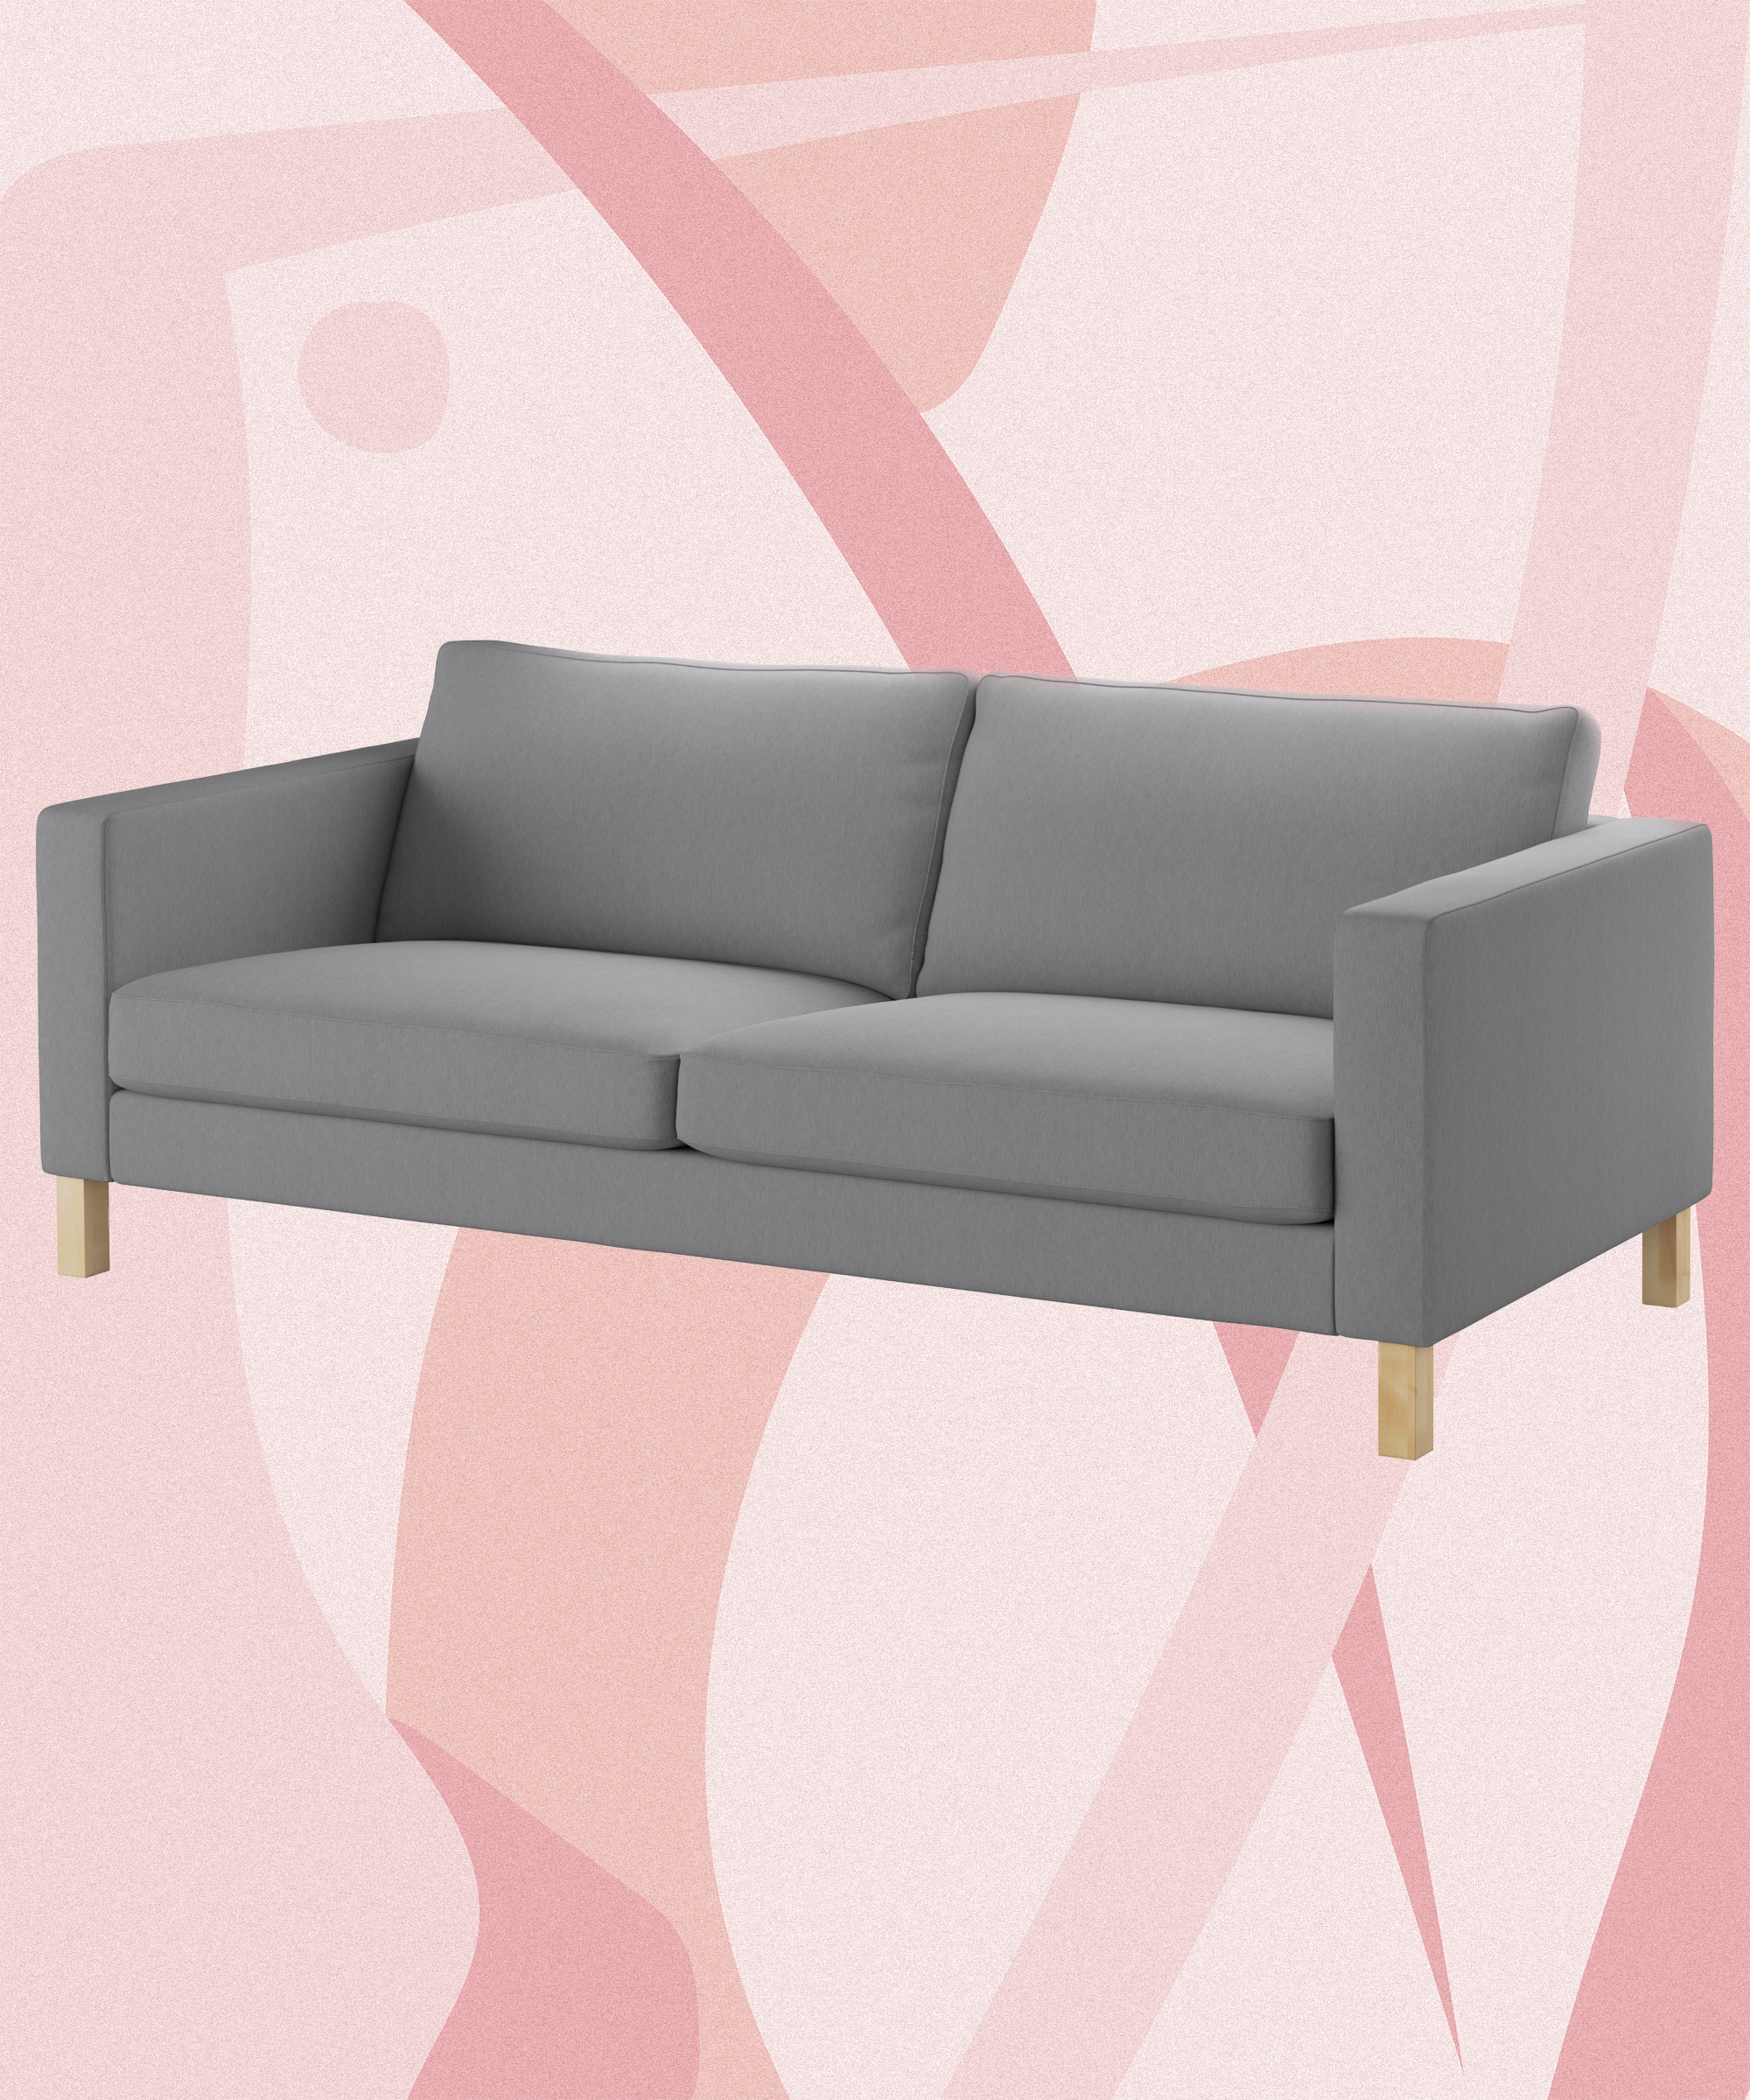 Millennial Pink Ikea Sofa Upholstery DIY How To